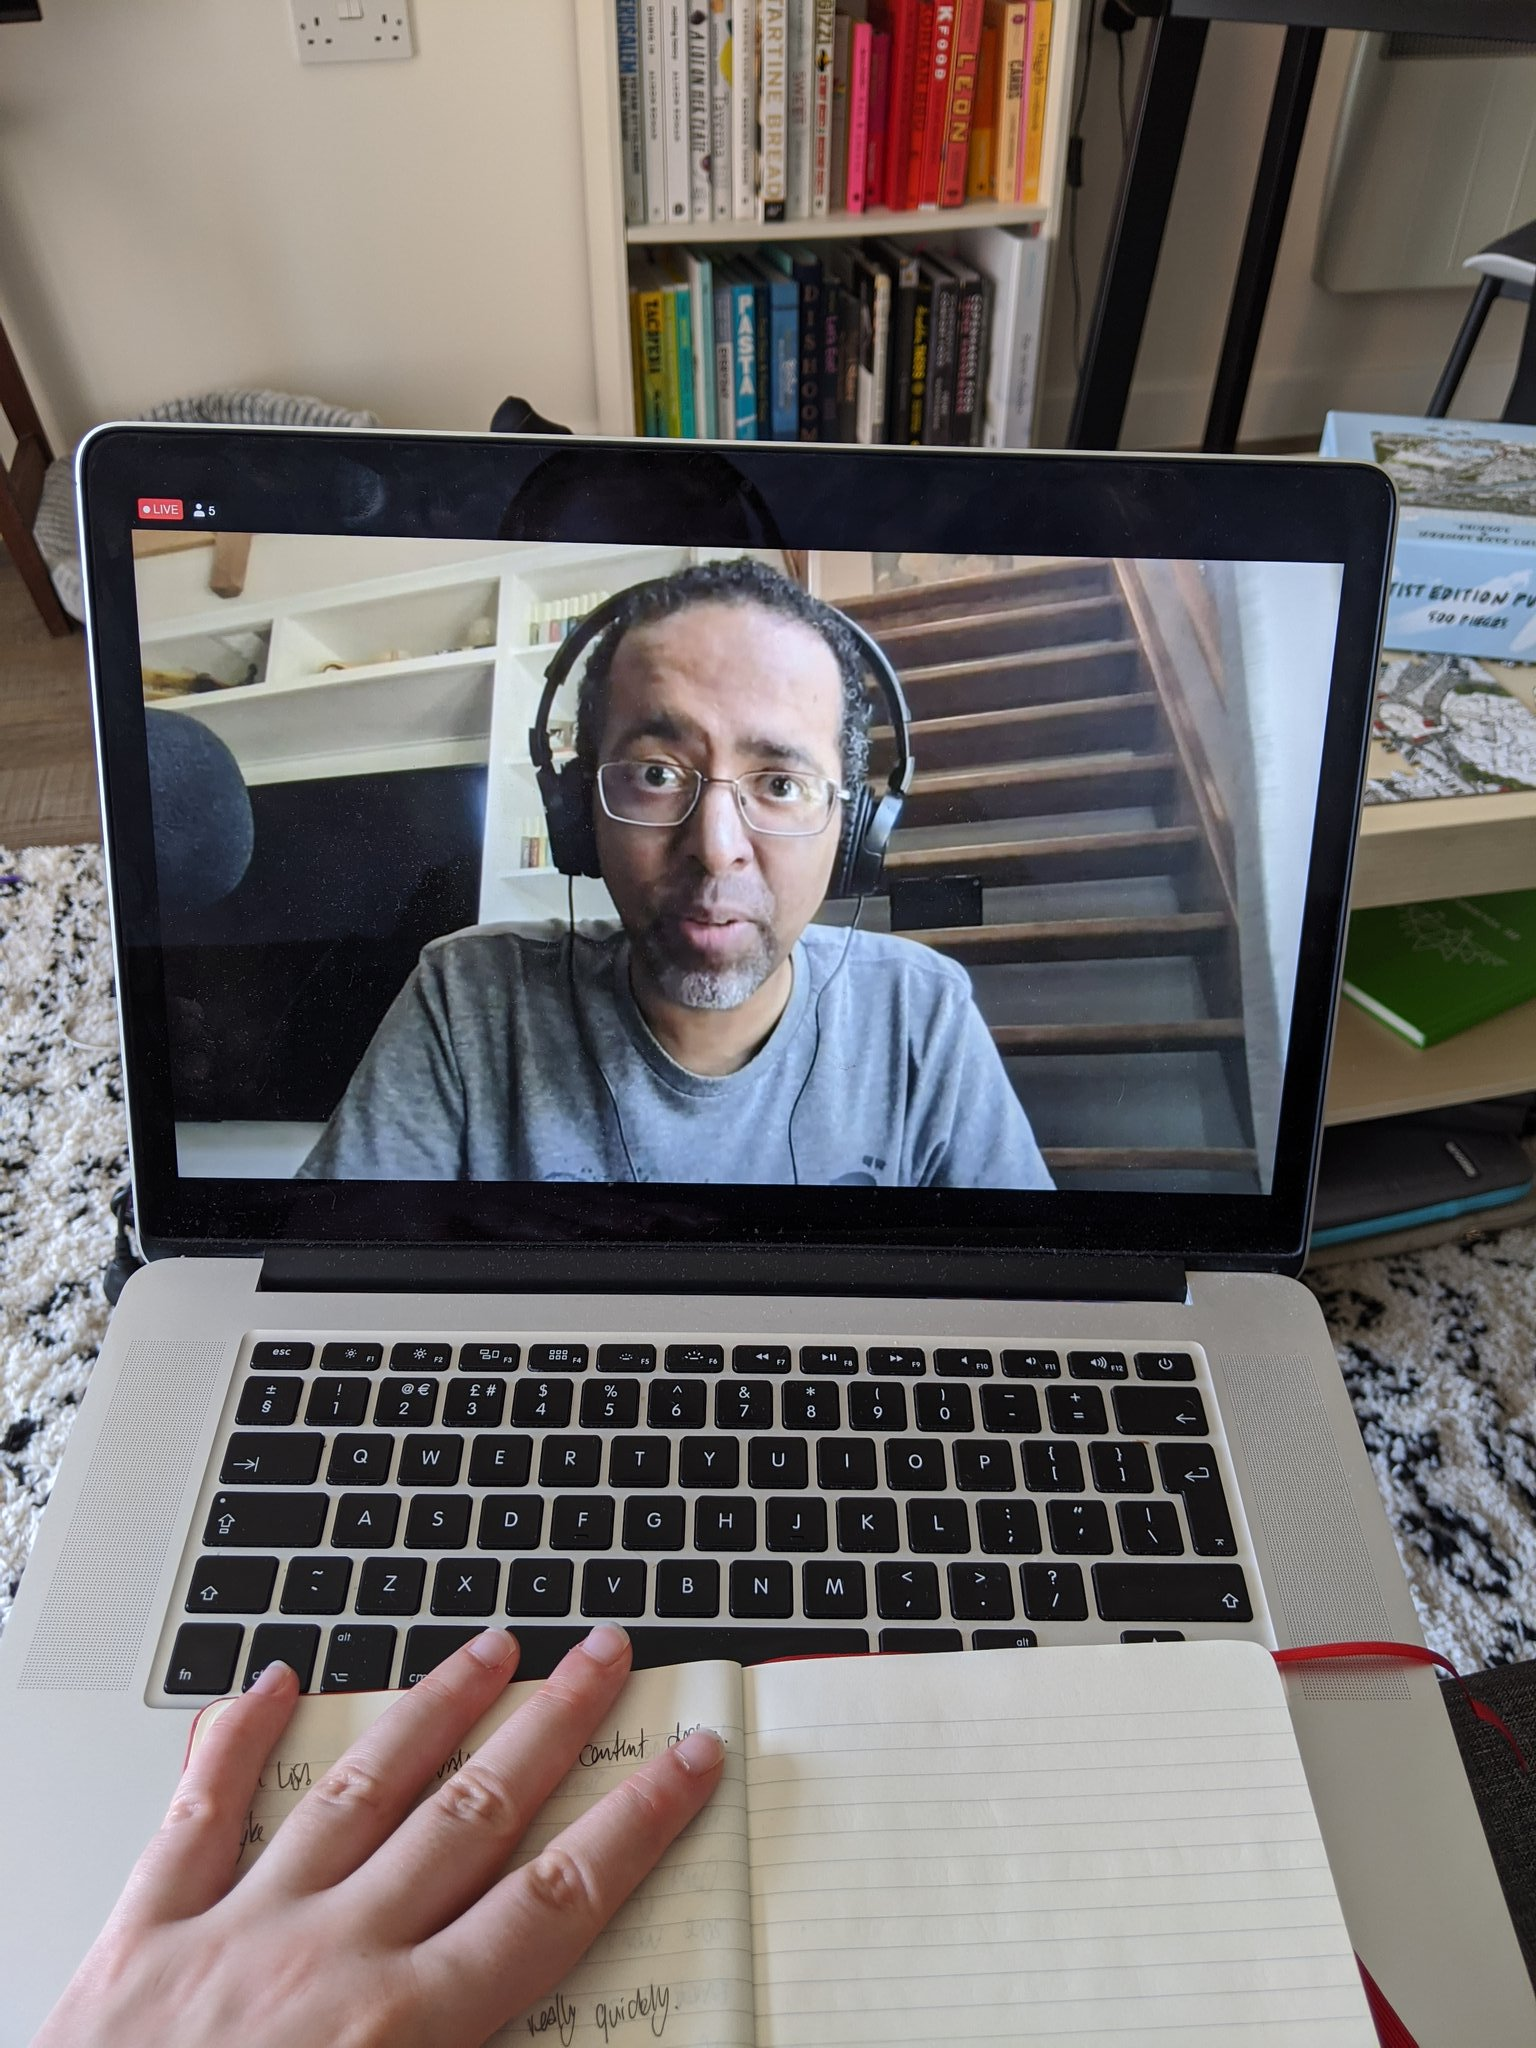 Attendee at home photo